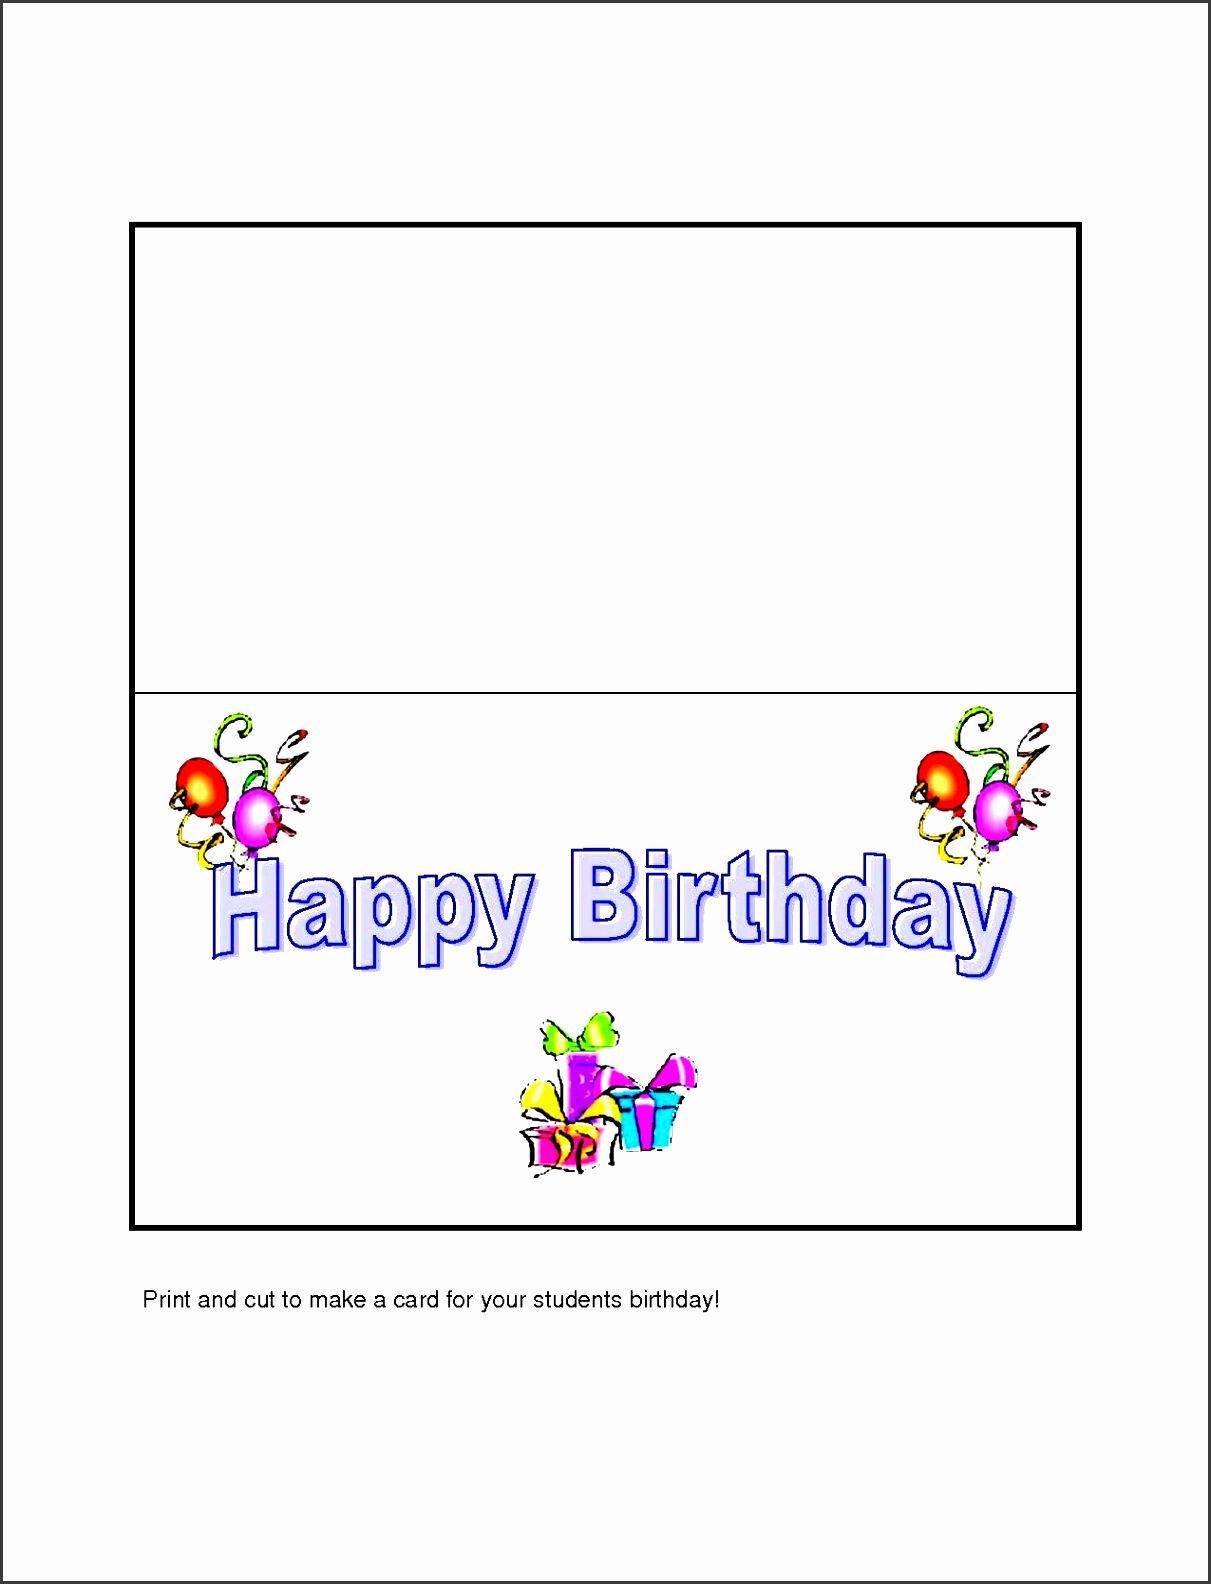 009 Astounding Happy Birthday Card Template For Word Concept Full